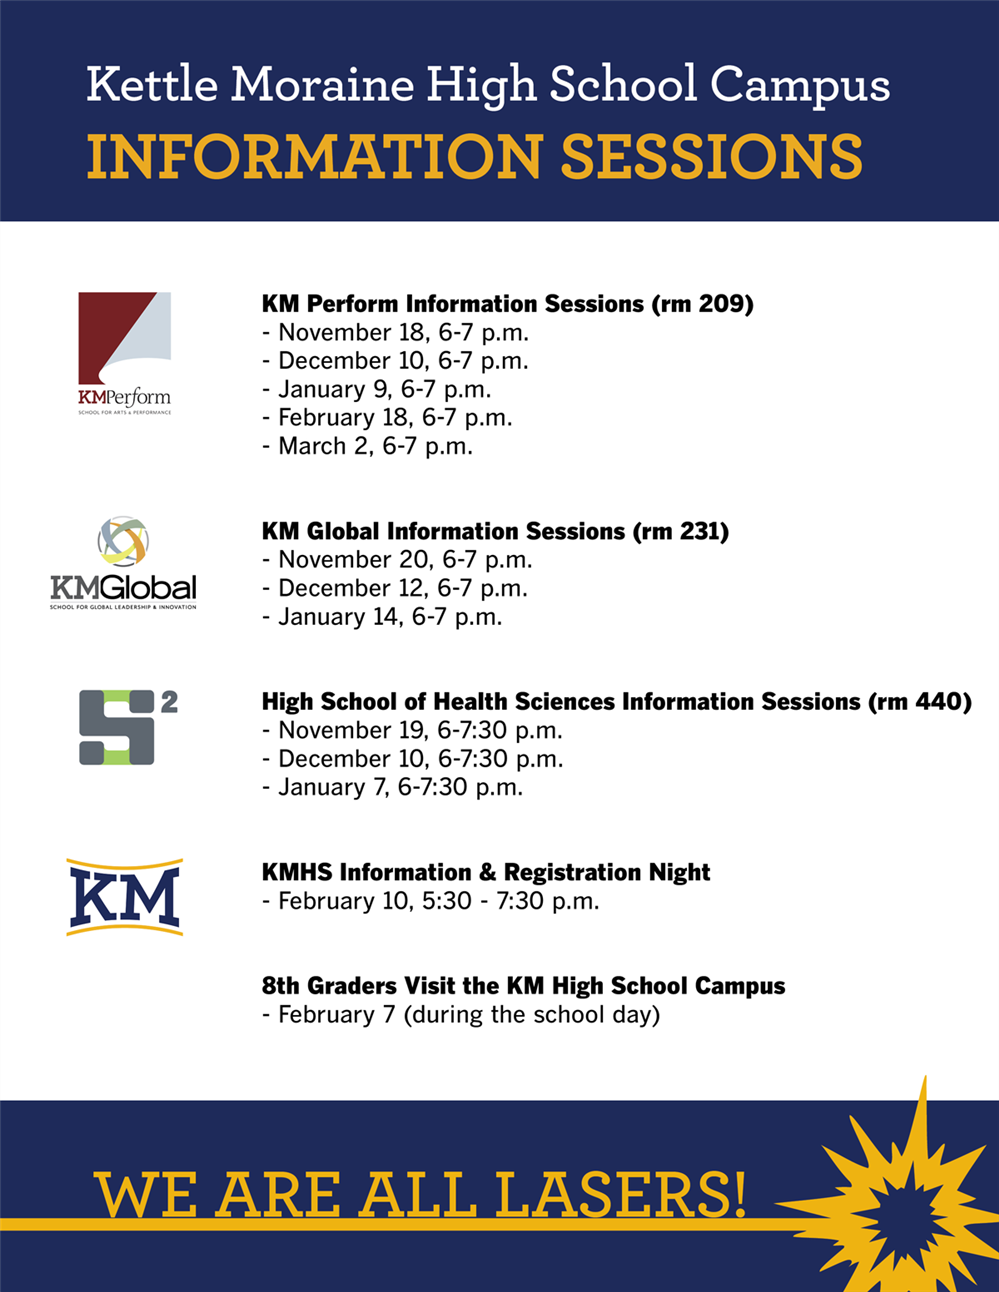 KM Campus Information Sessions